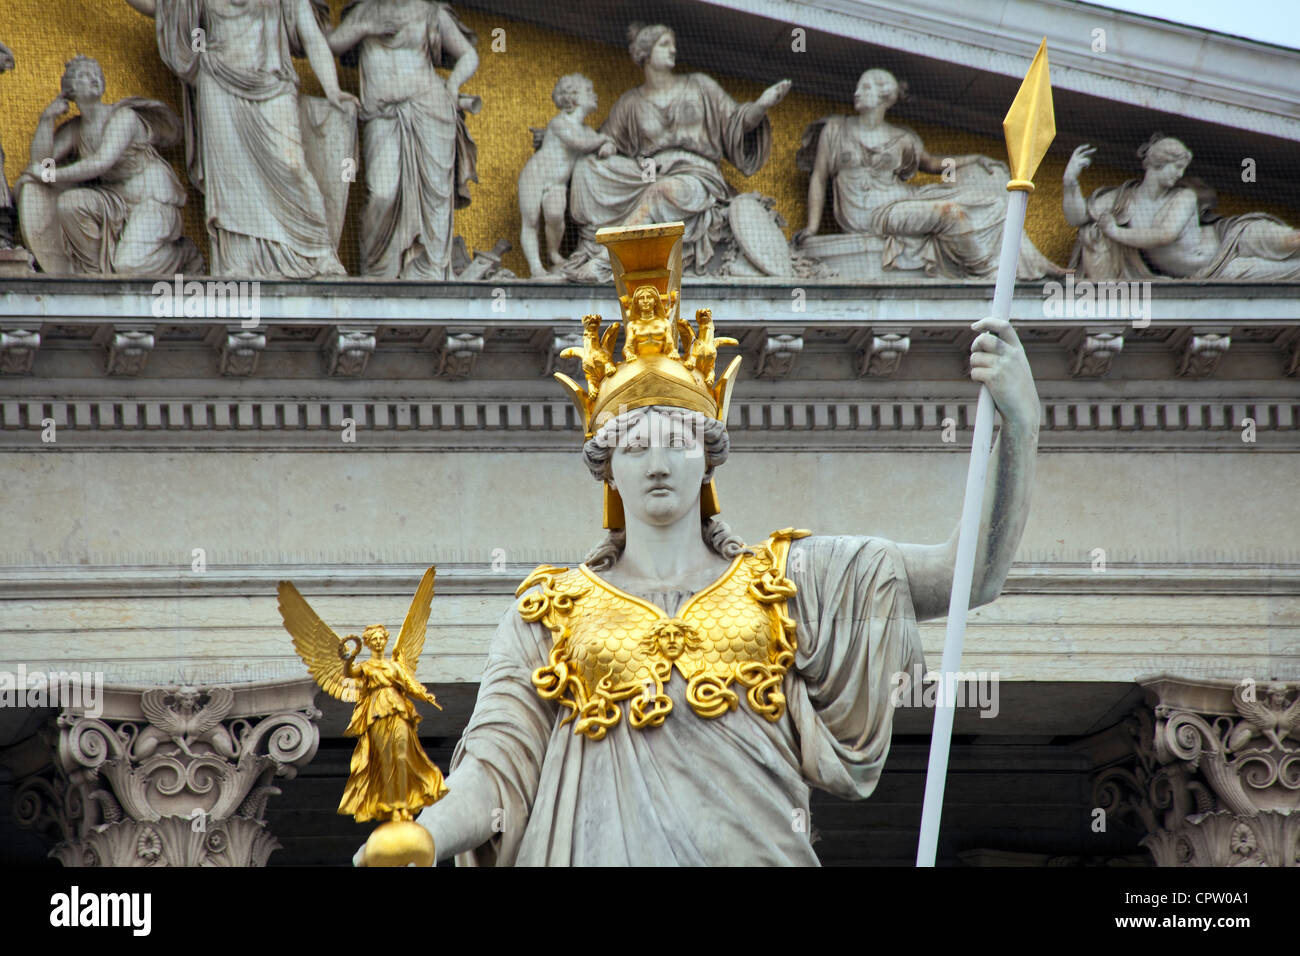 Pallas Athene Statue of of the goddess of Wisdom with Goddess NIke in her hand outside the parliament in Vienna - Stock Image